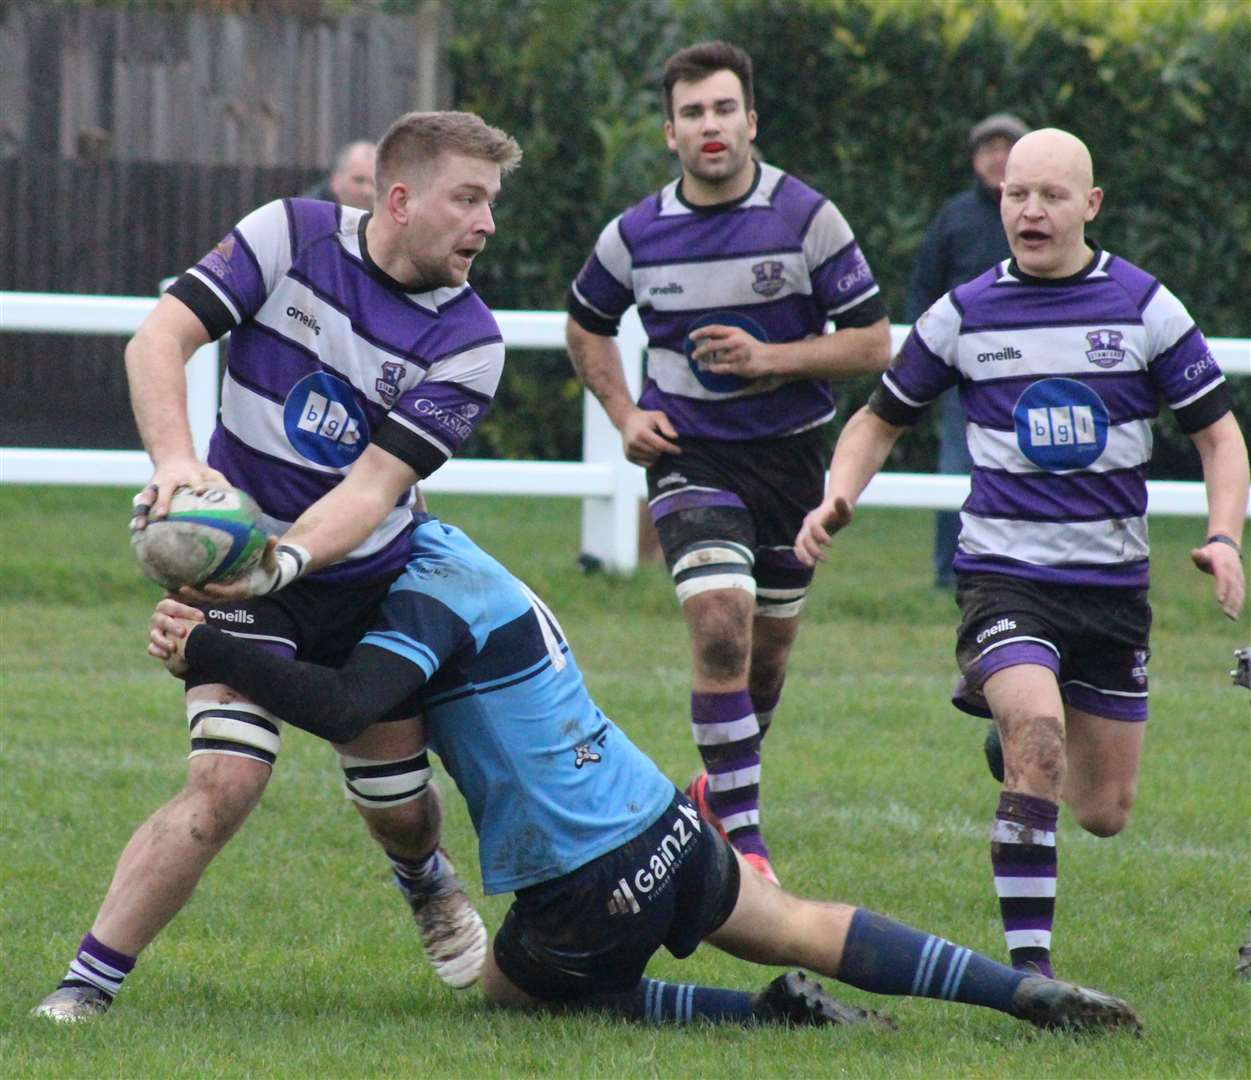 Stamford scored 50 points in Saturday's success against St Neots. Photo: Darren Dolby (22480322)